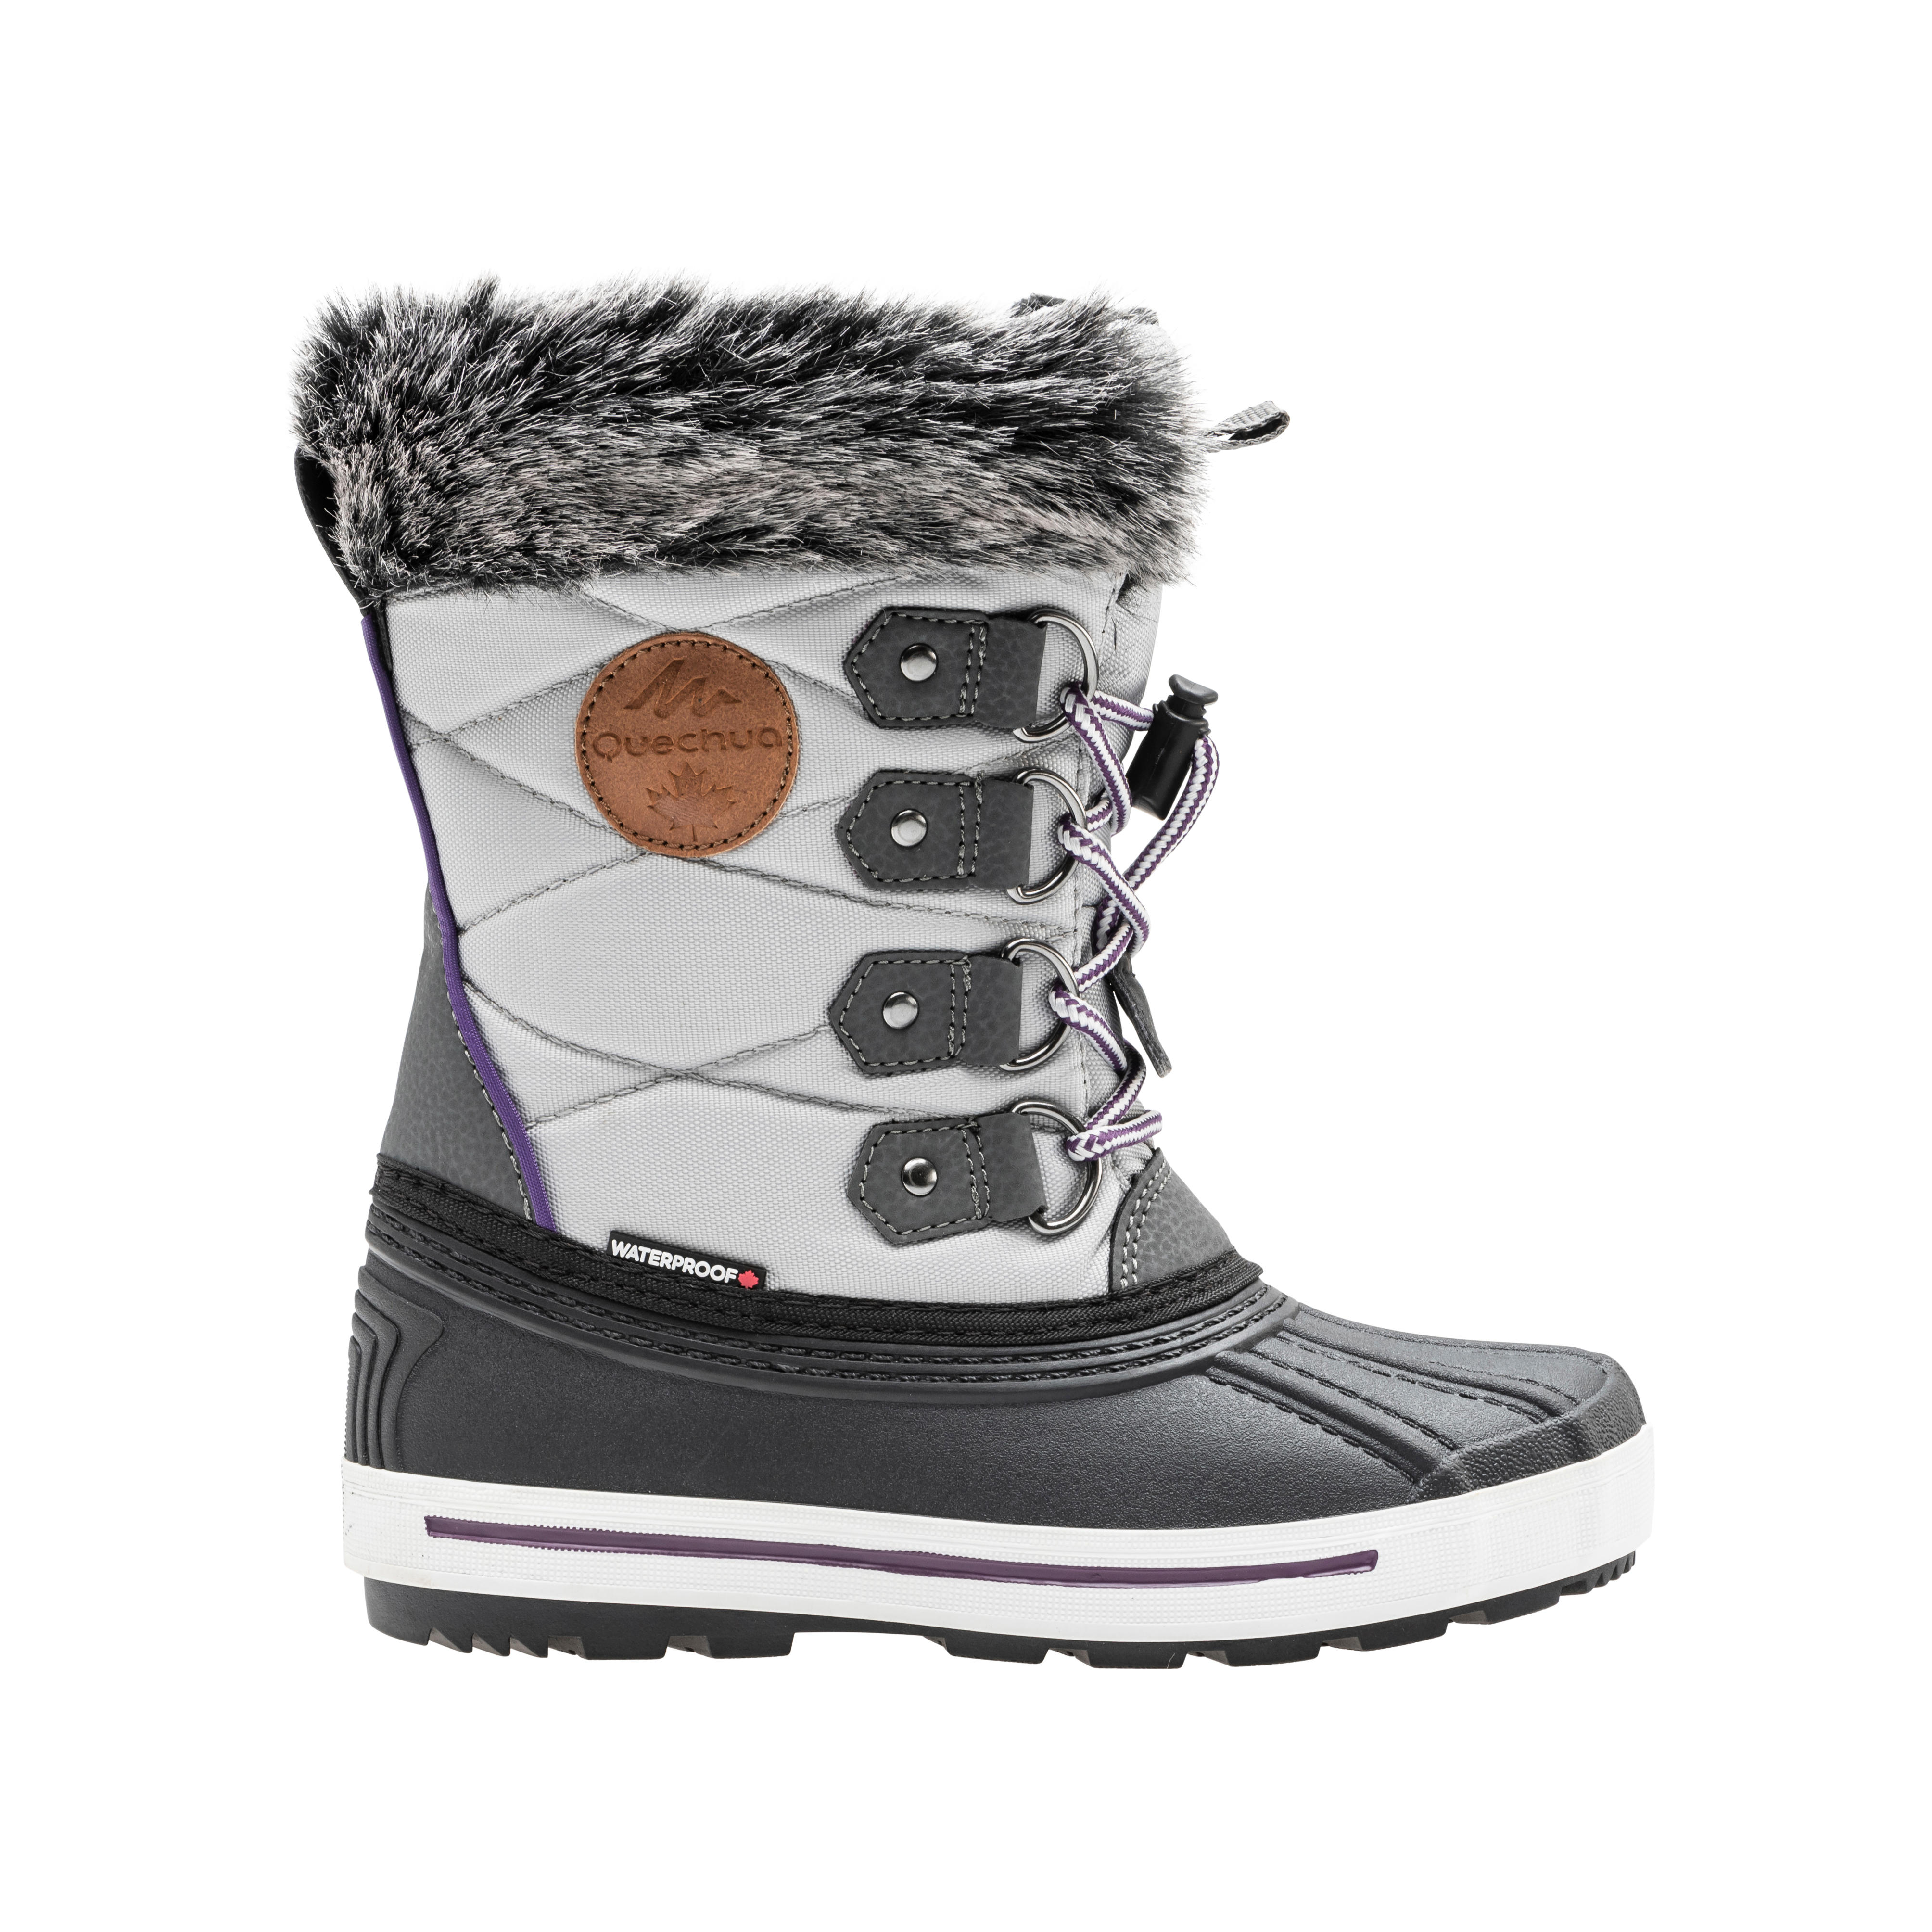 BIXA Girls' Waterproof and Insulating Snow Boot with Removable Sockliner.